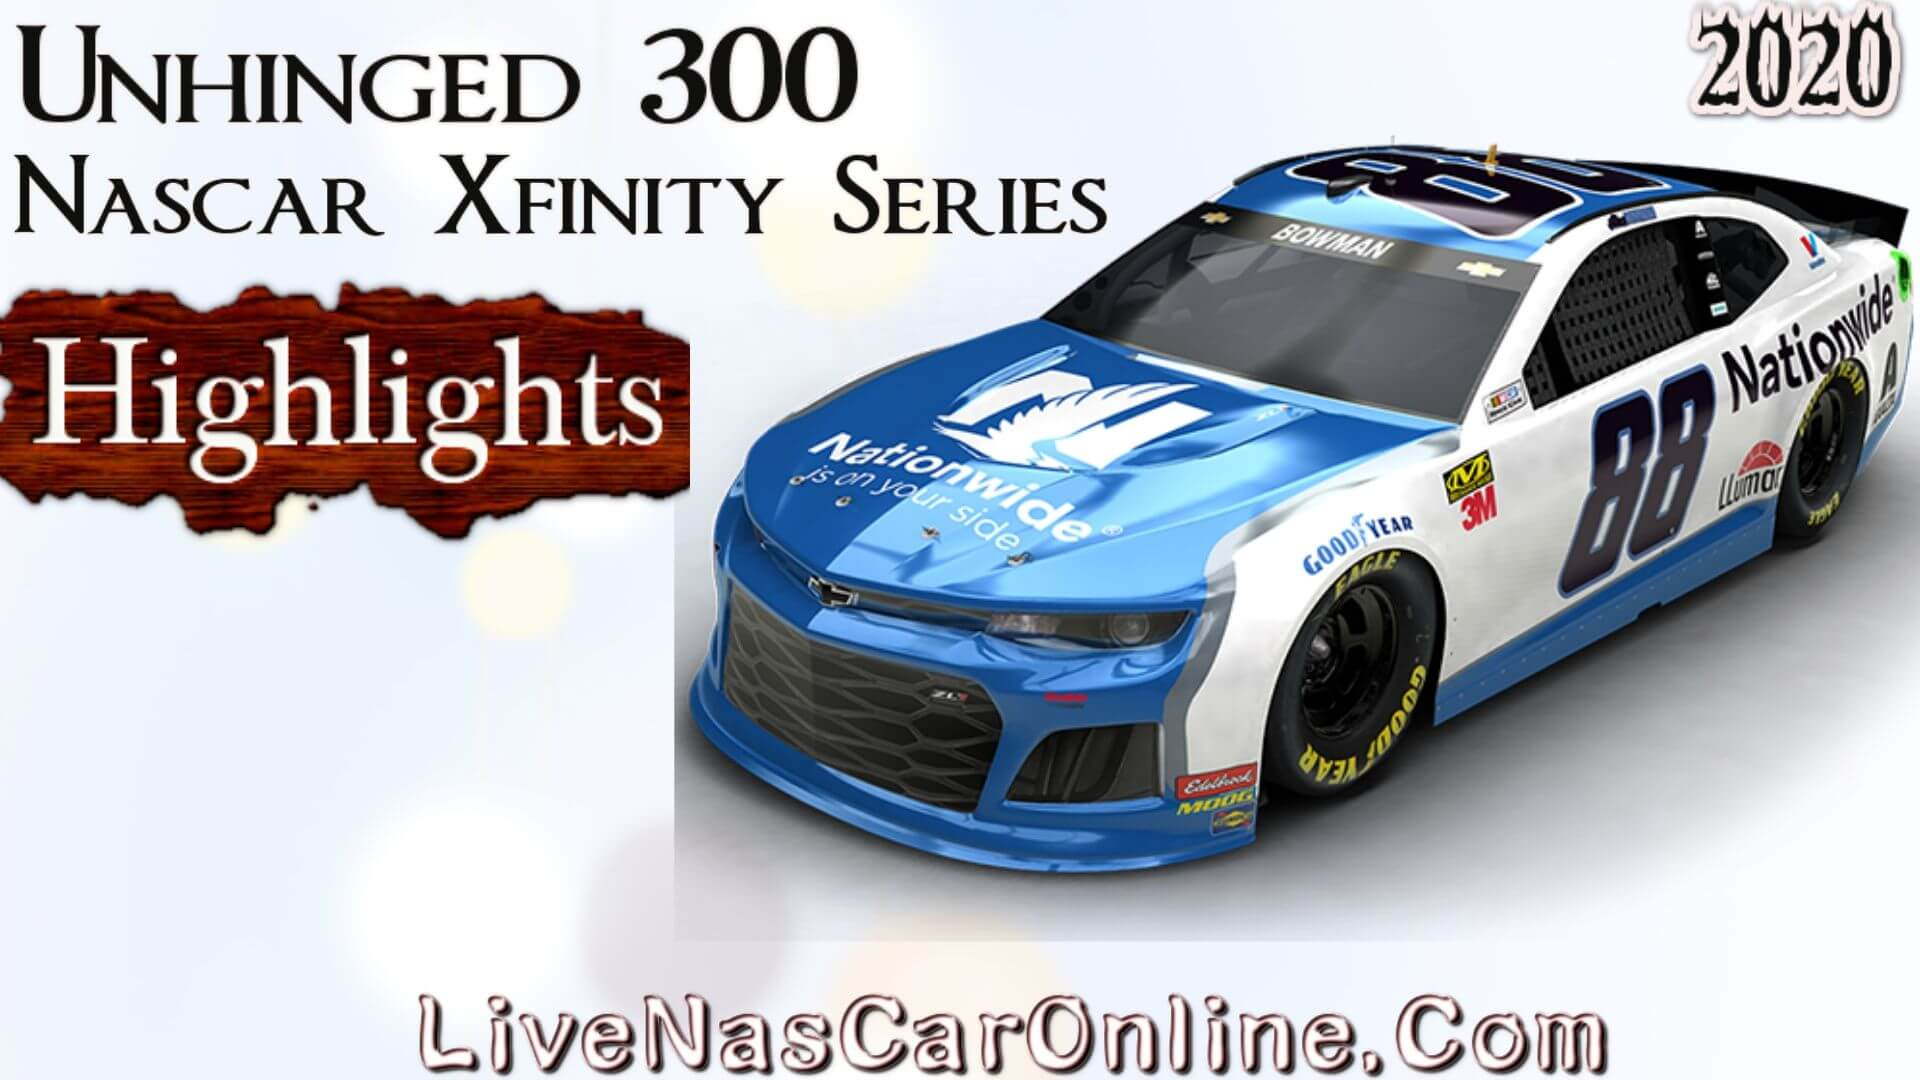 Unhinged 300 Xfinity Series Highlights 2020